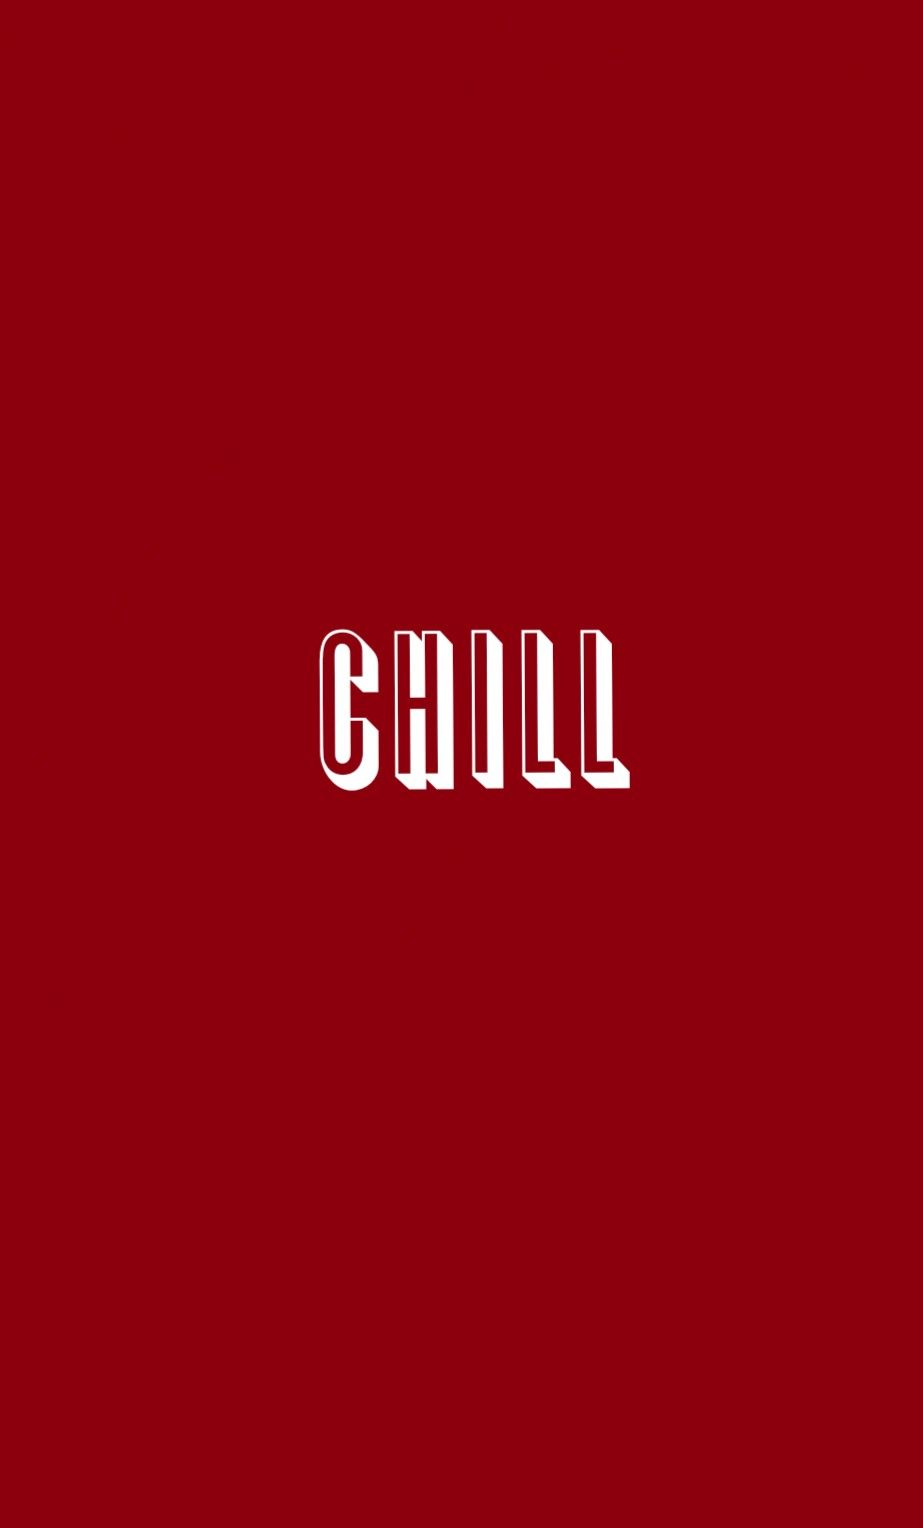 Aesthetic Red Quote Wallpaper Background Netflix And Chill